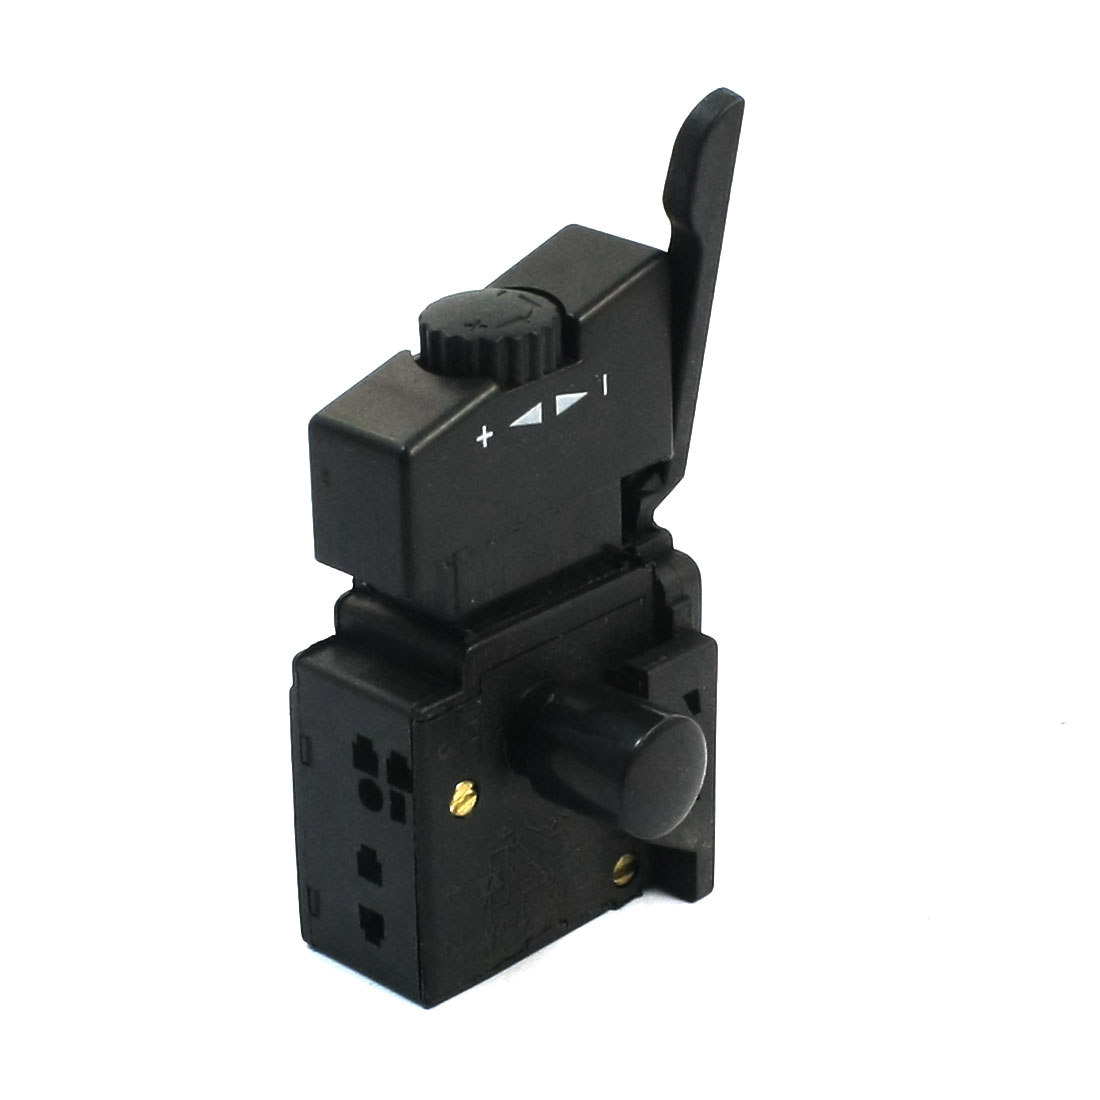 Speed Control Manual Locking DPST Trigger Switch FA2-4/1BEK for Electric Drill